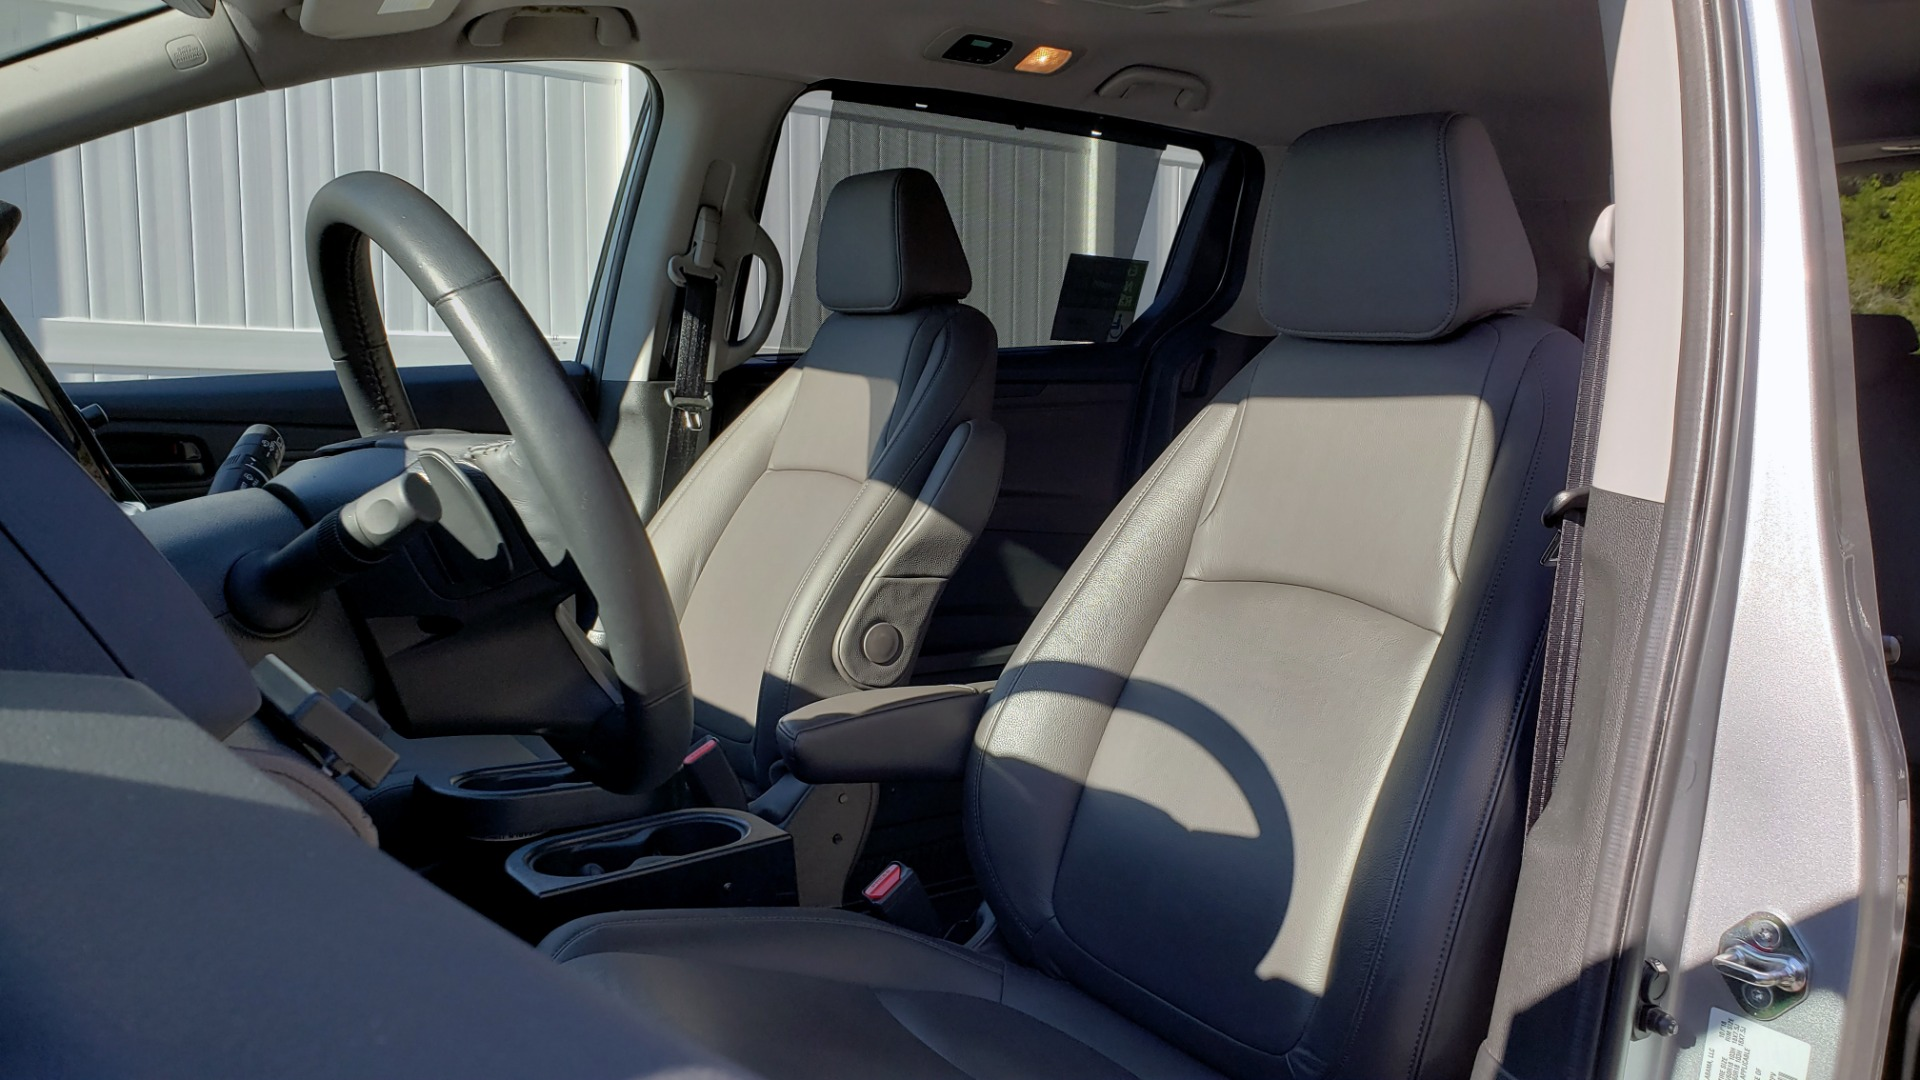 Used 2019 Honda ODYSSEY EX-L BRAUNABILITY / NAV / RES / LKA / BLUE-RAY / SUNROOF / REARVIEW for sale Sold at Formula Imports in Charlotte NC 28227 14